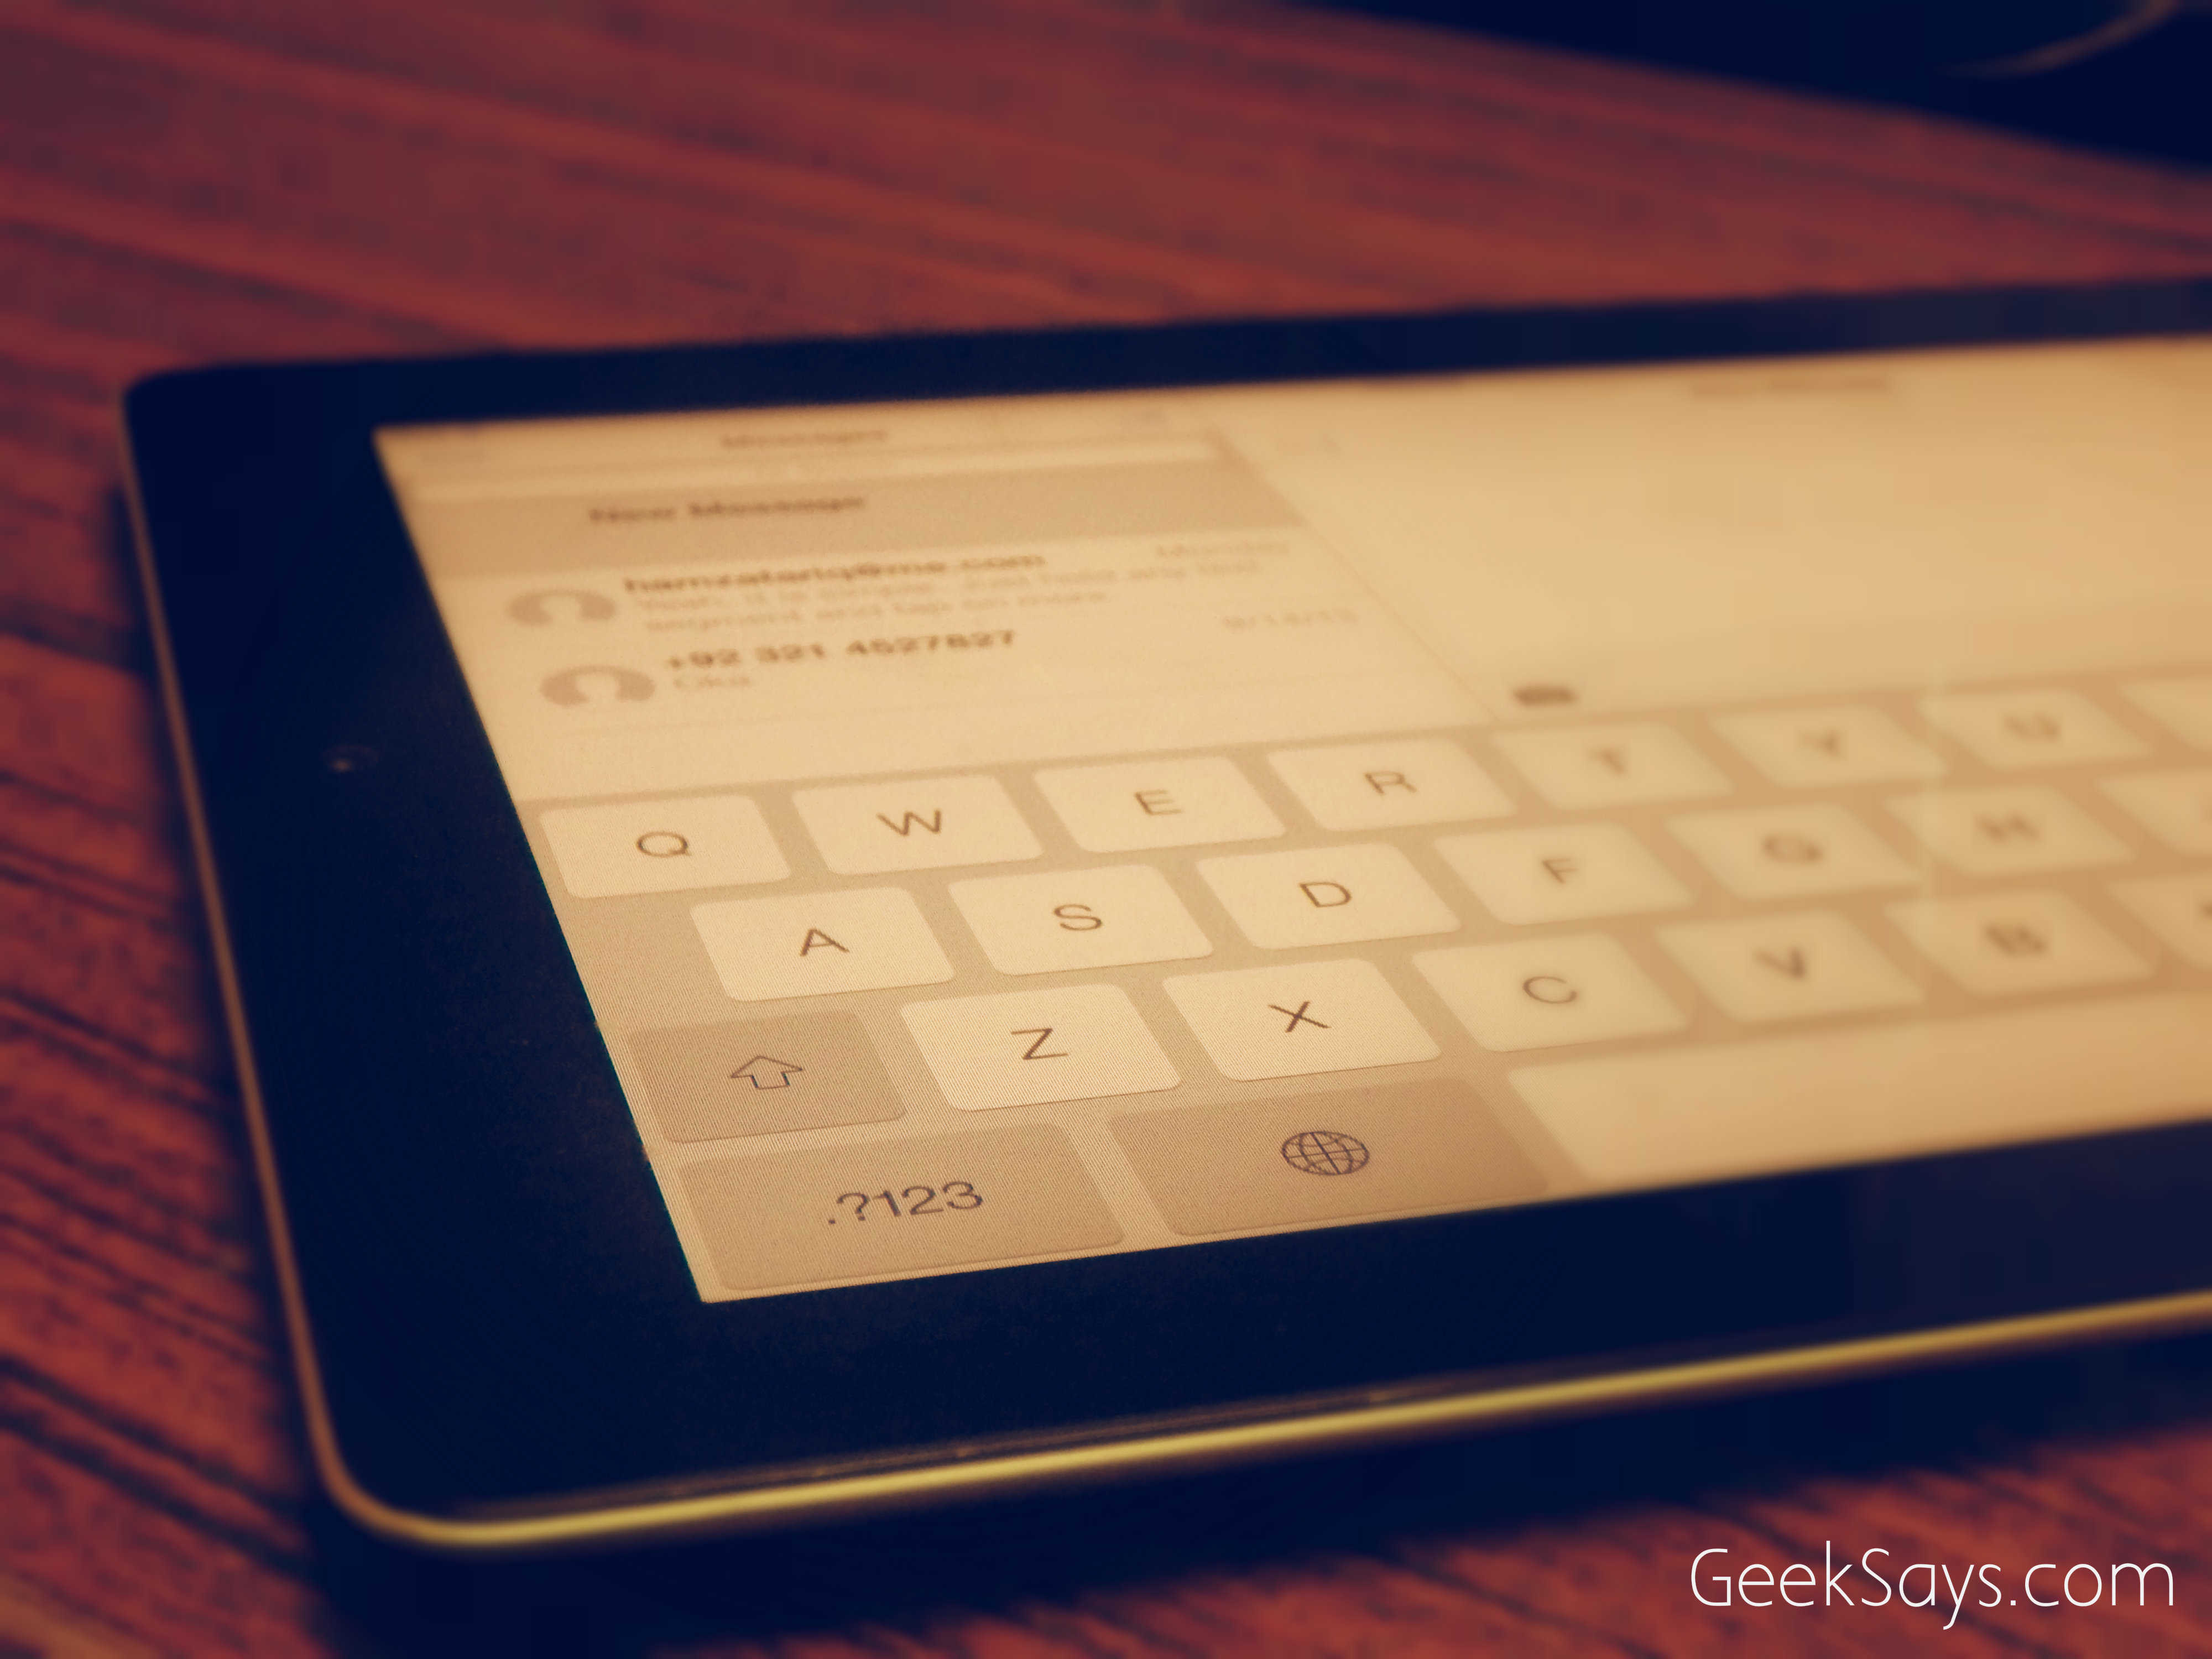 fix iOS 7 keyboard lag on iPad